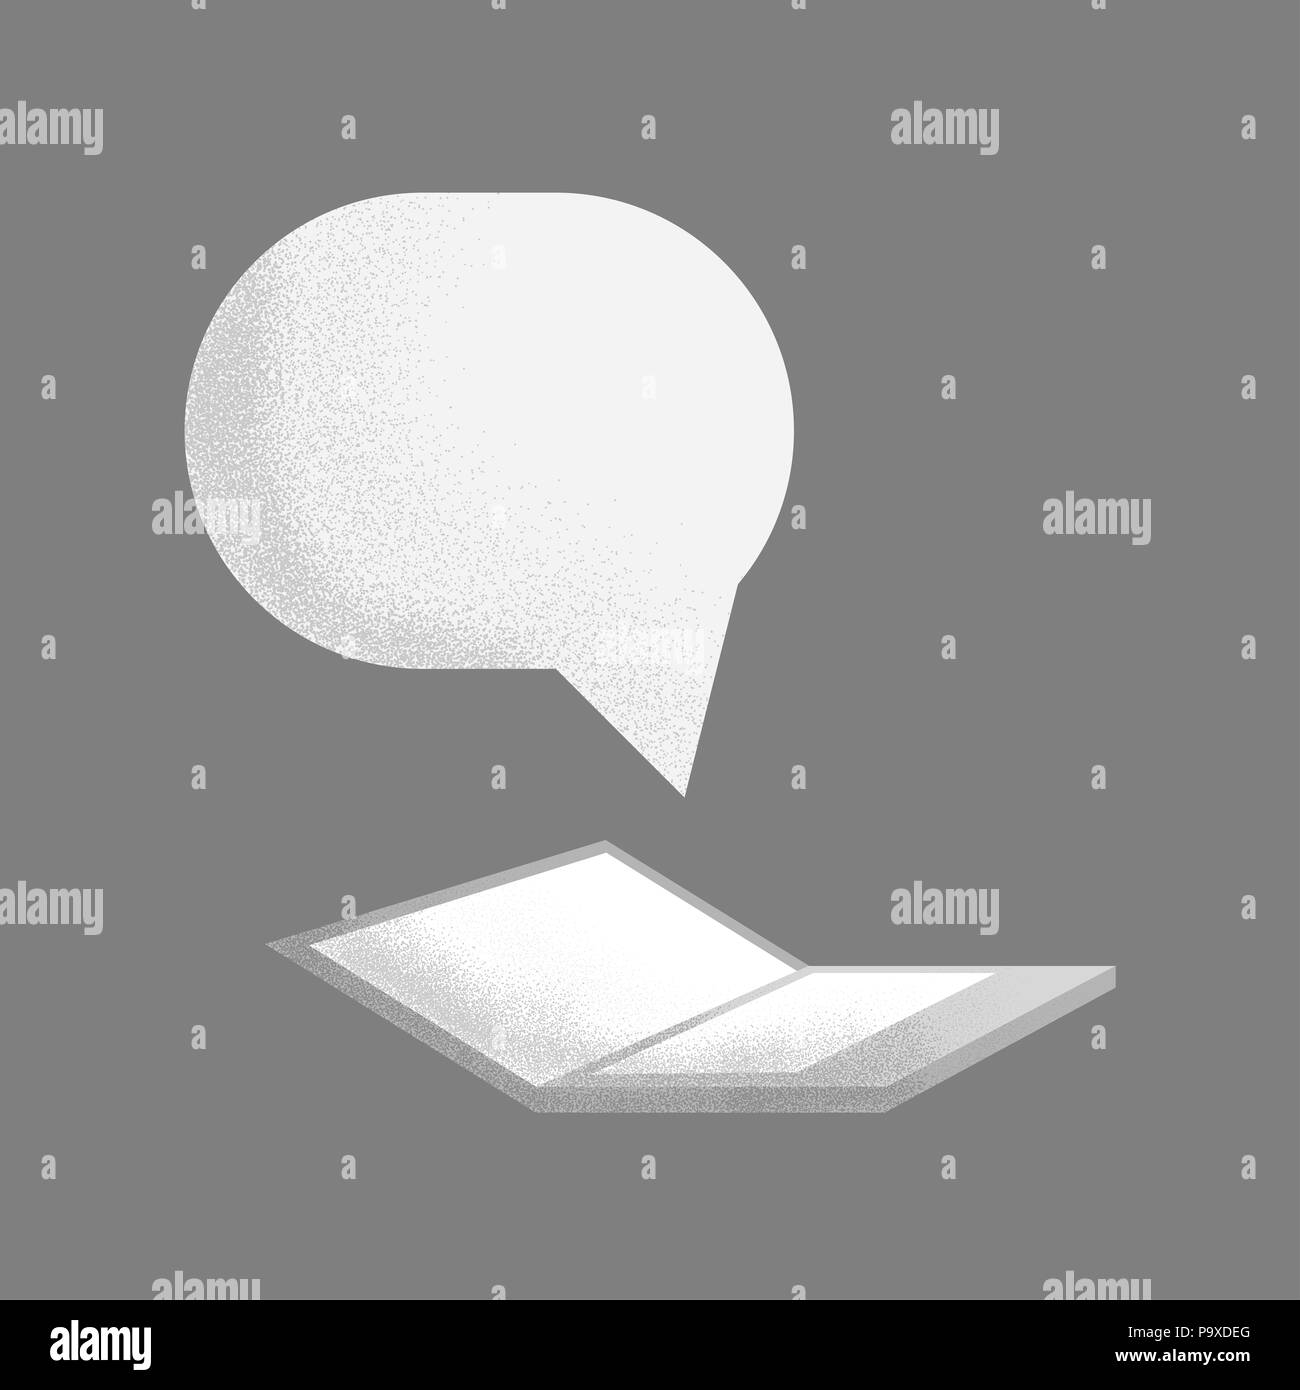 Laptop with speech bubbles isolated on a gray background - Stock Image